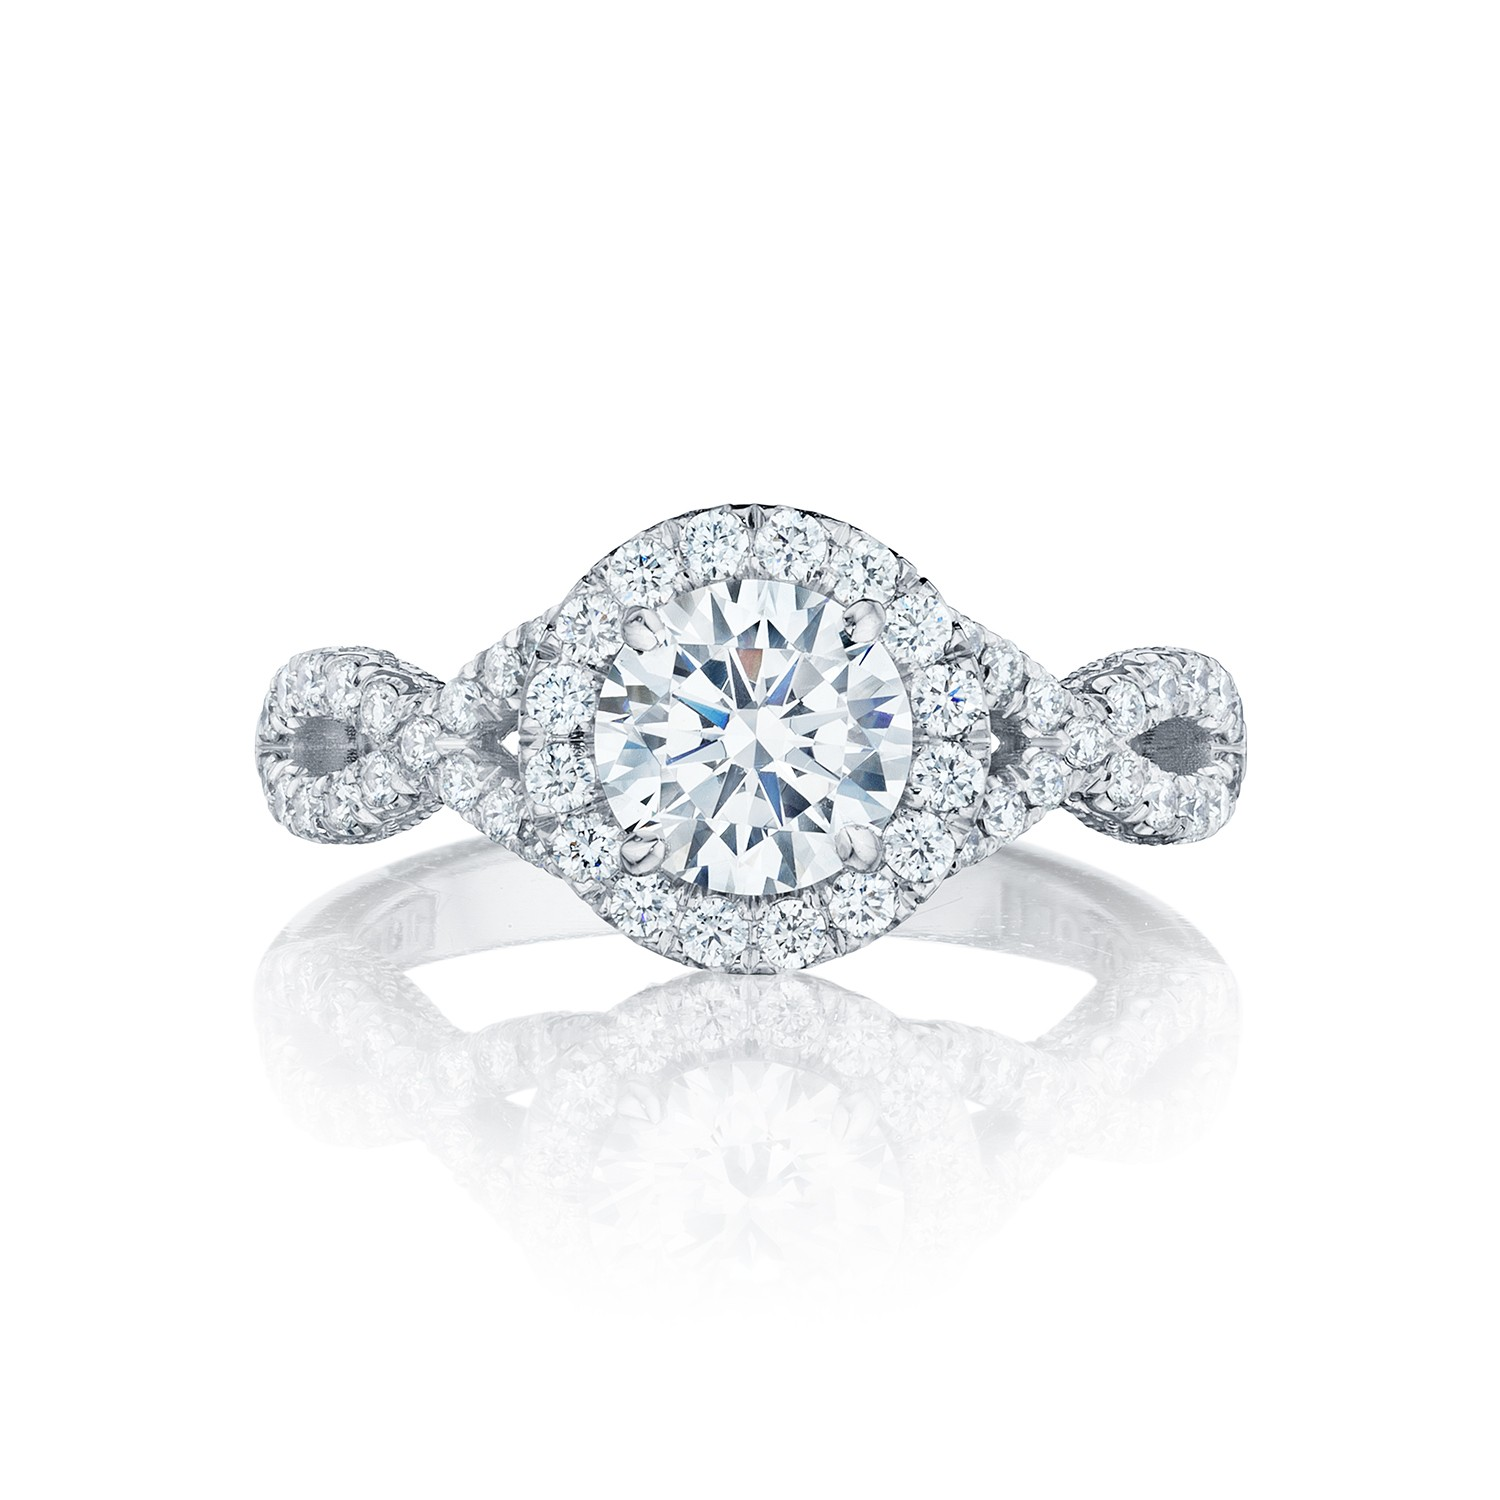 tacori-engagement-ring-at-dk-gems-online-diamond-engagement-rings-store-and-best-jewelry-stores-in-st-maarten-ht2549rd65-_10_2